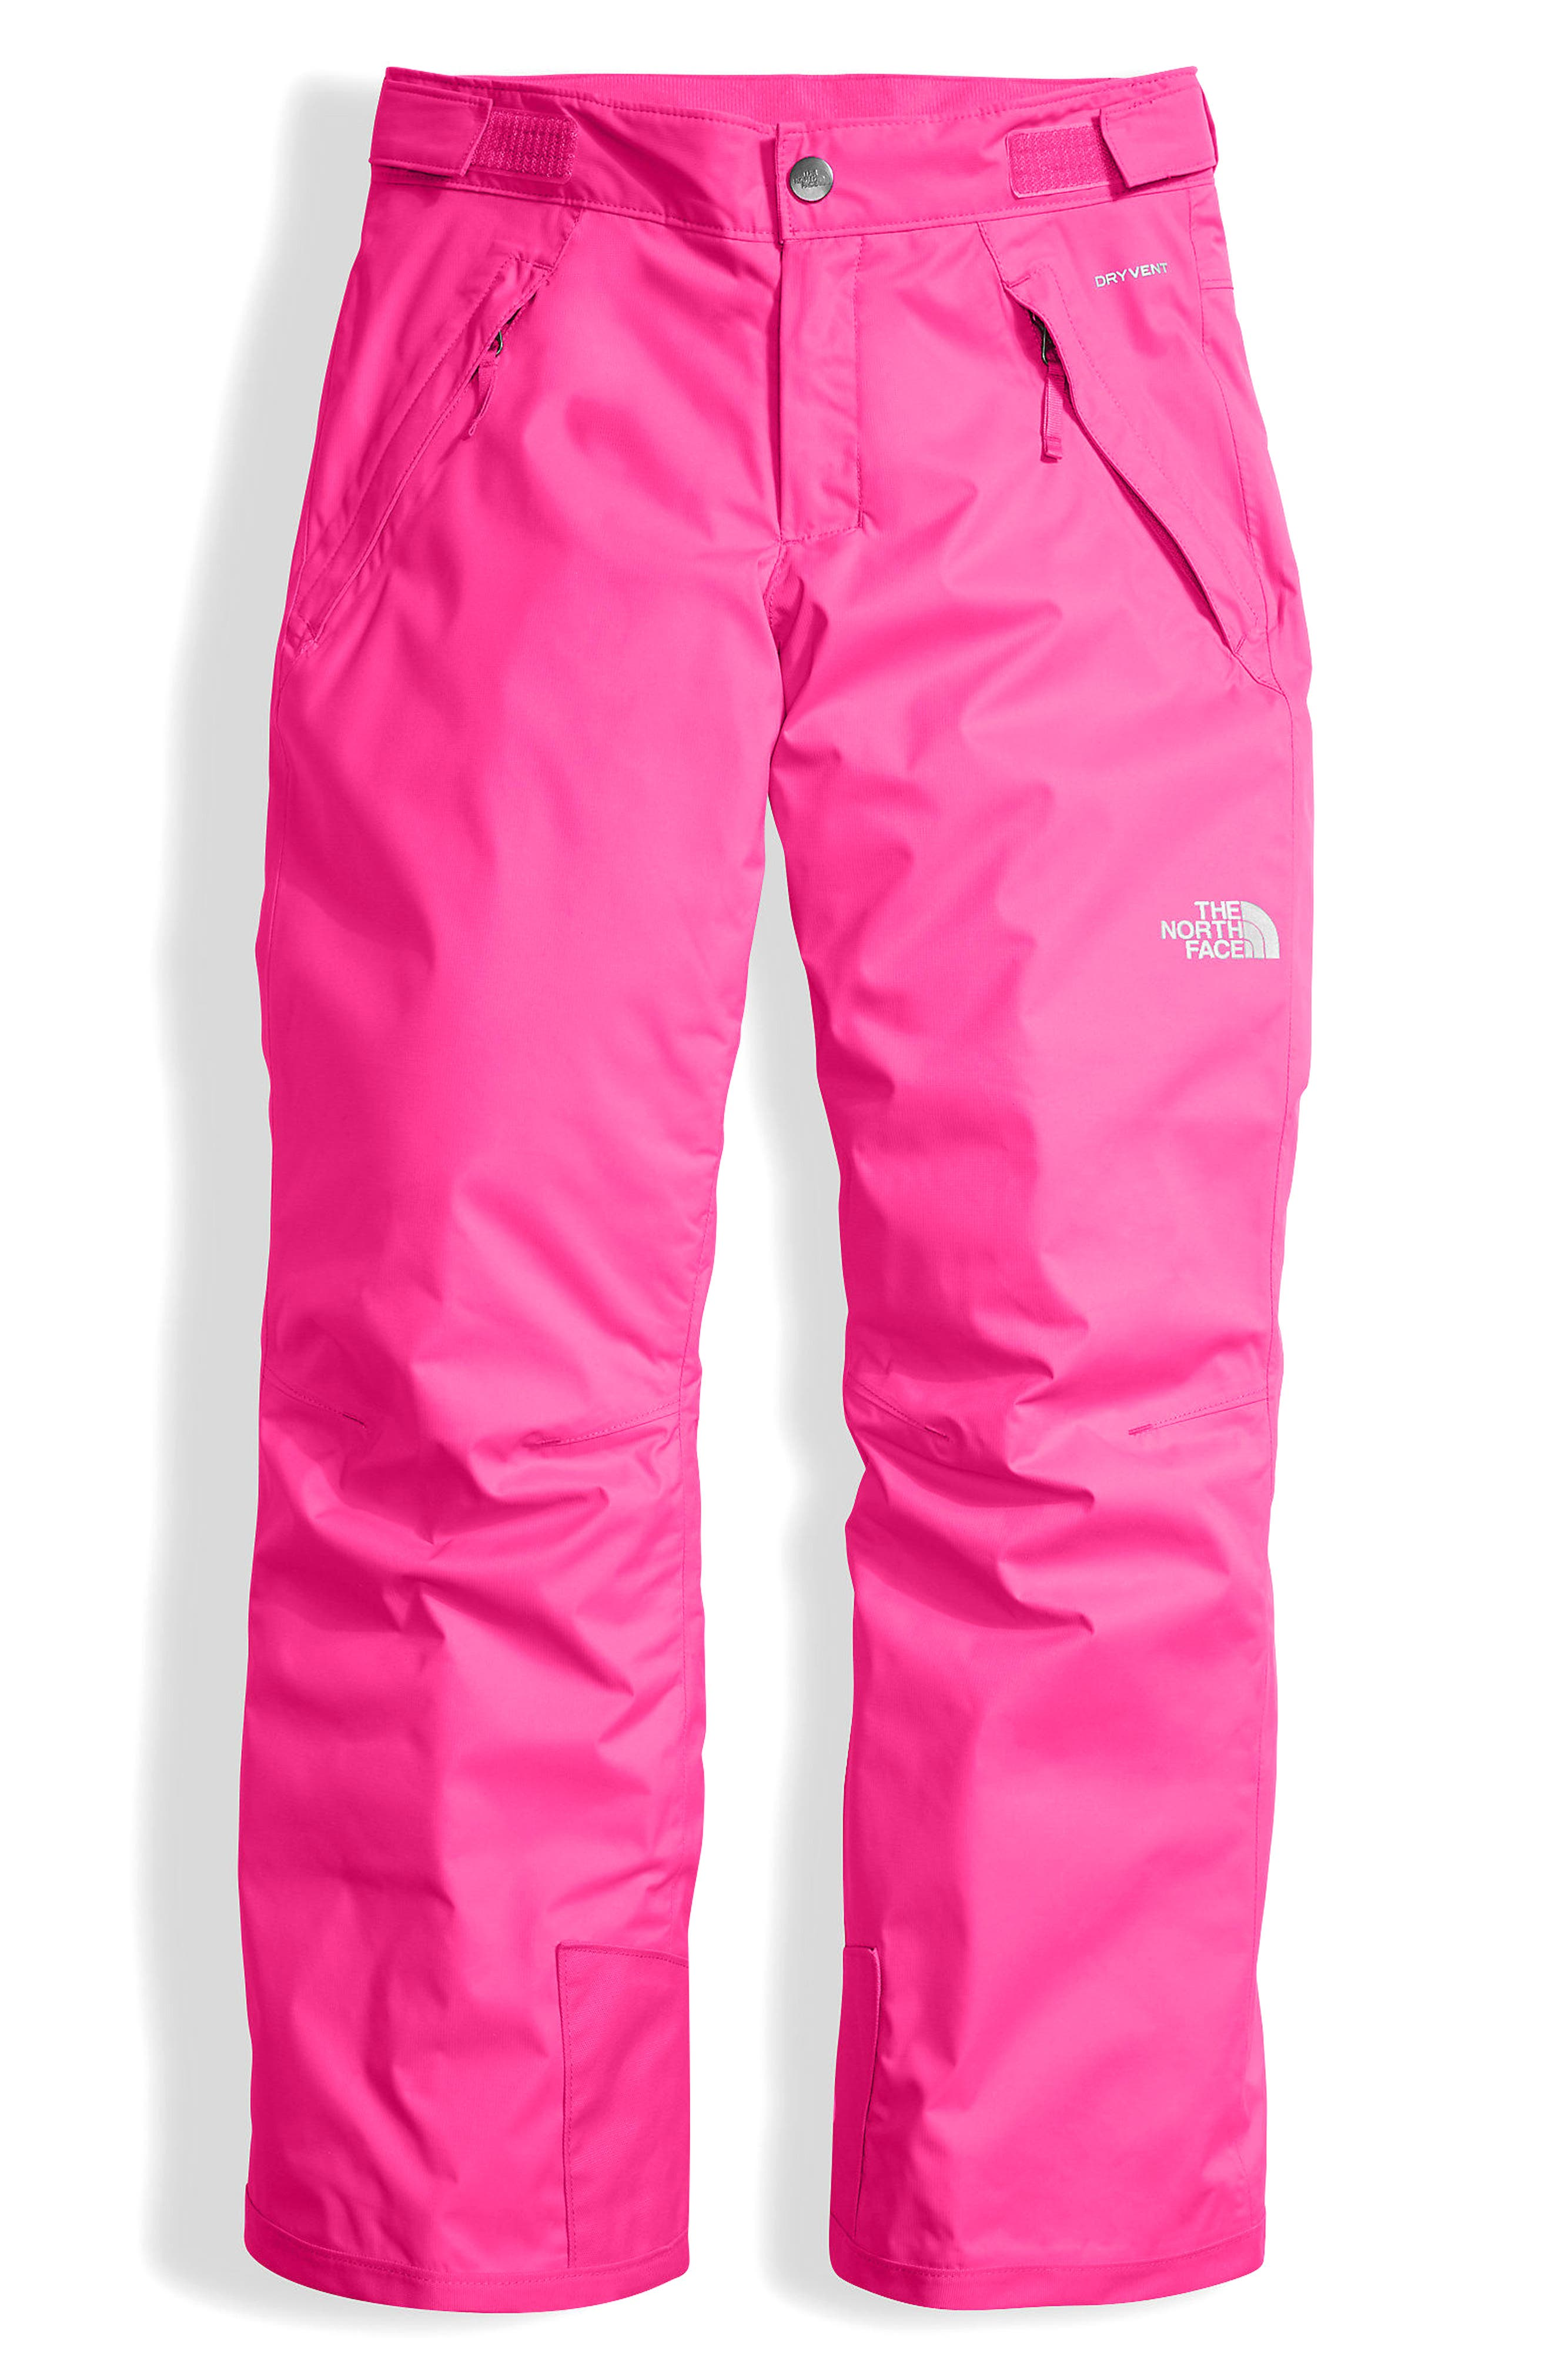 Main Image - The North Face Freedom Waterproof Heatseeker™ Insulated Snow Pants (Big Girls)